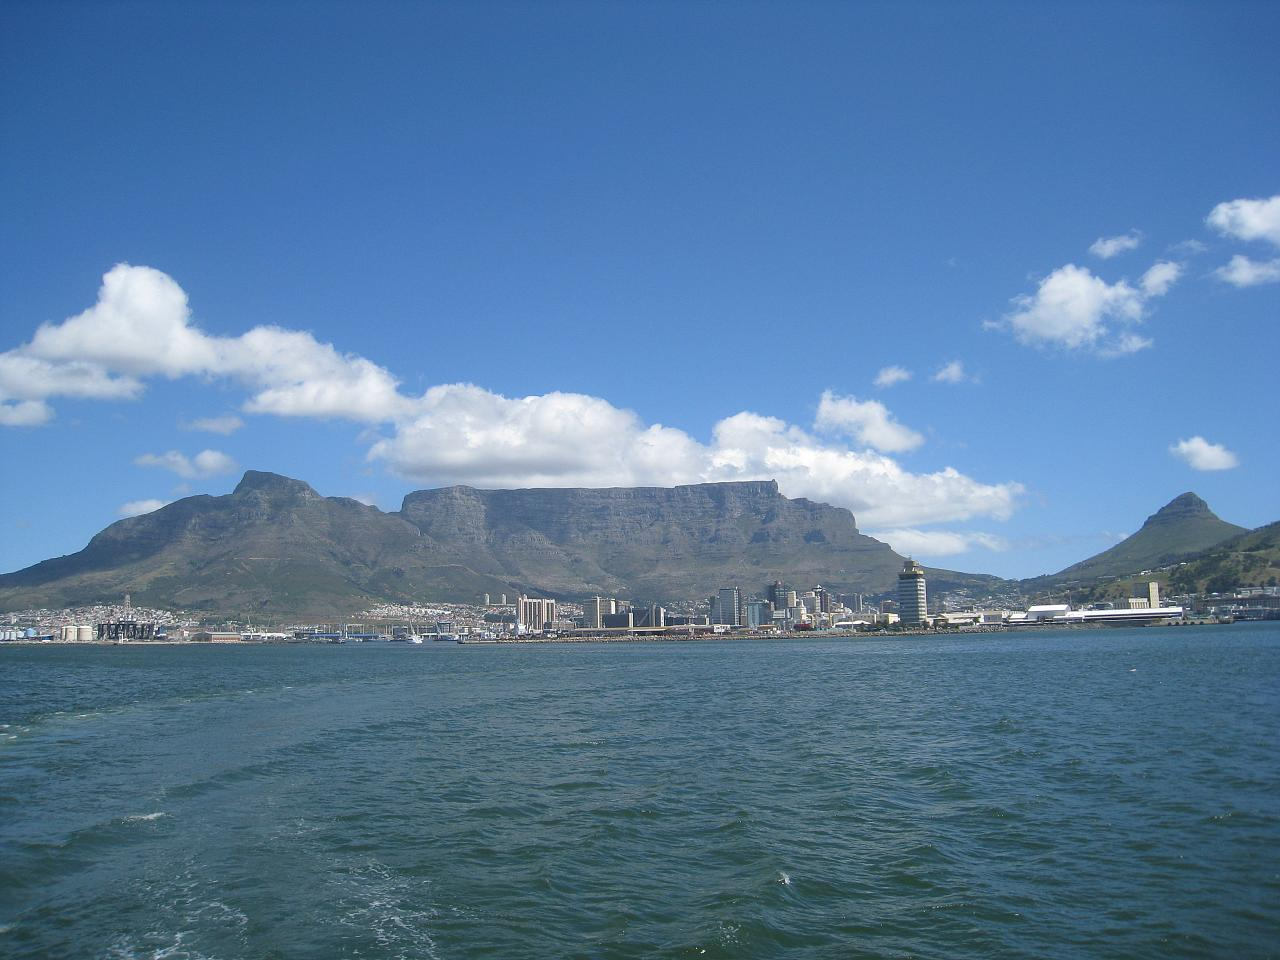 Downtown Cape Town as seen from the water